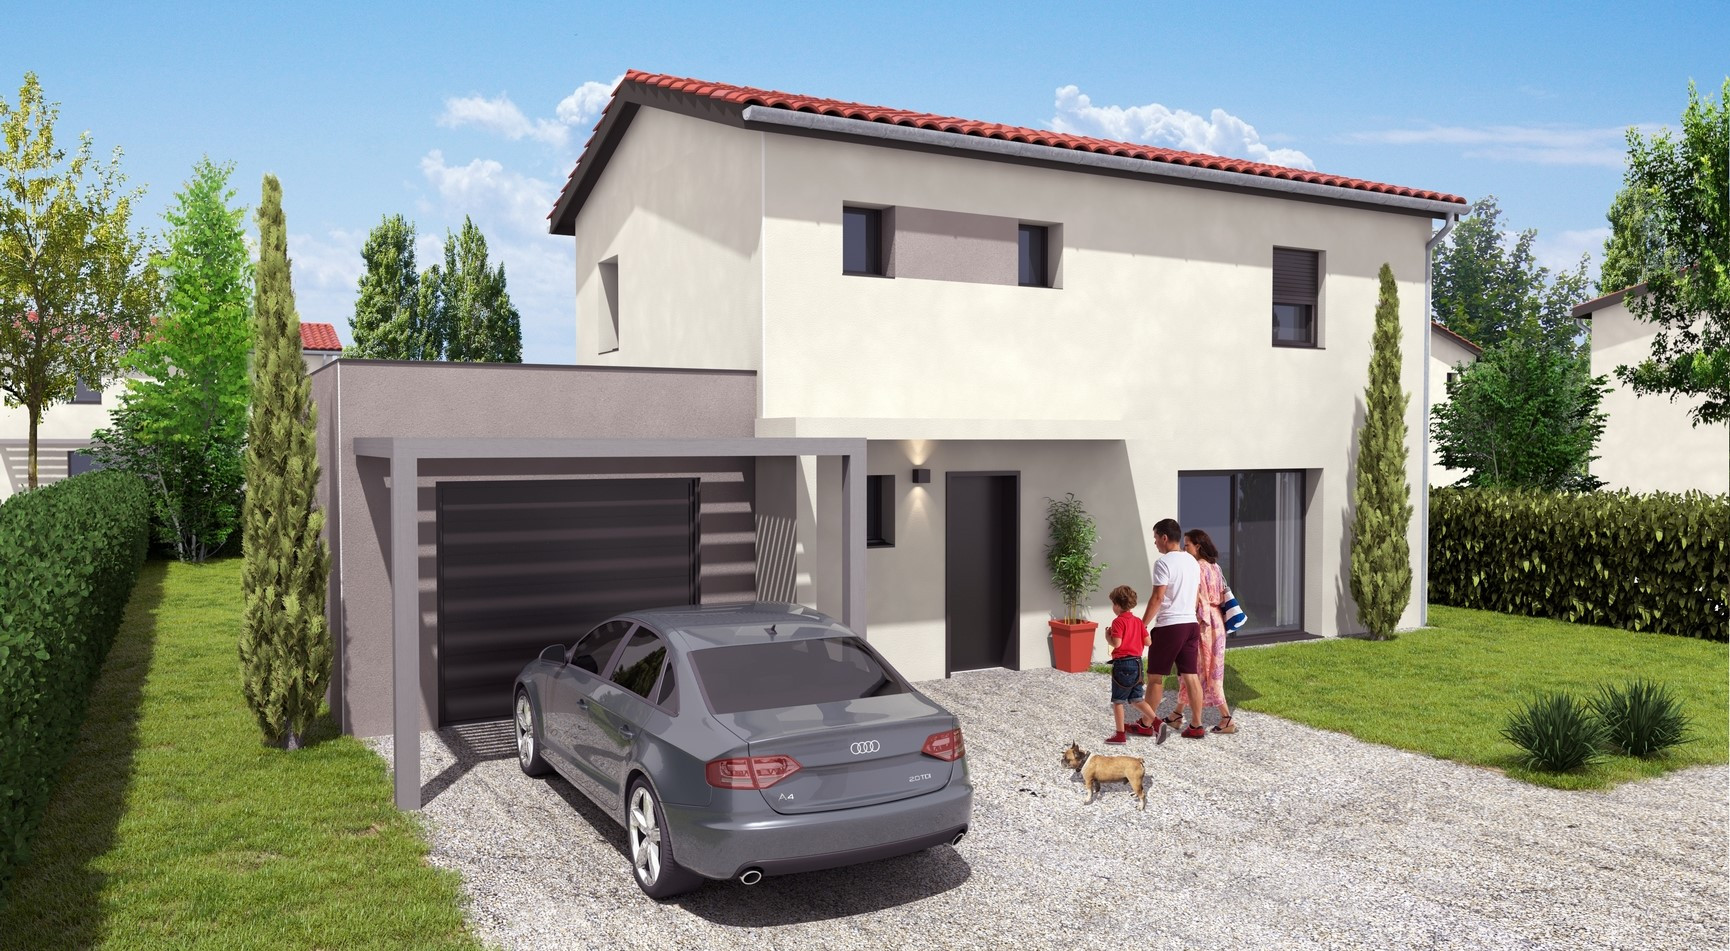 Programme immobilier EQ2 appartement à Charly(69390)